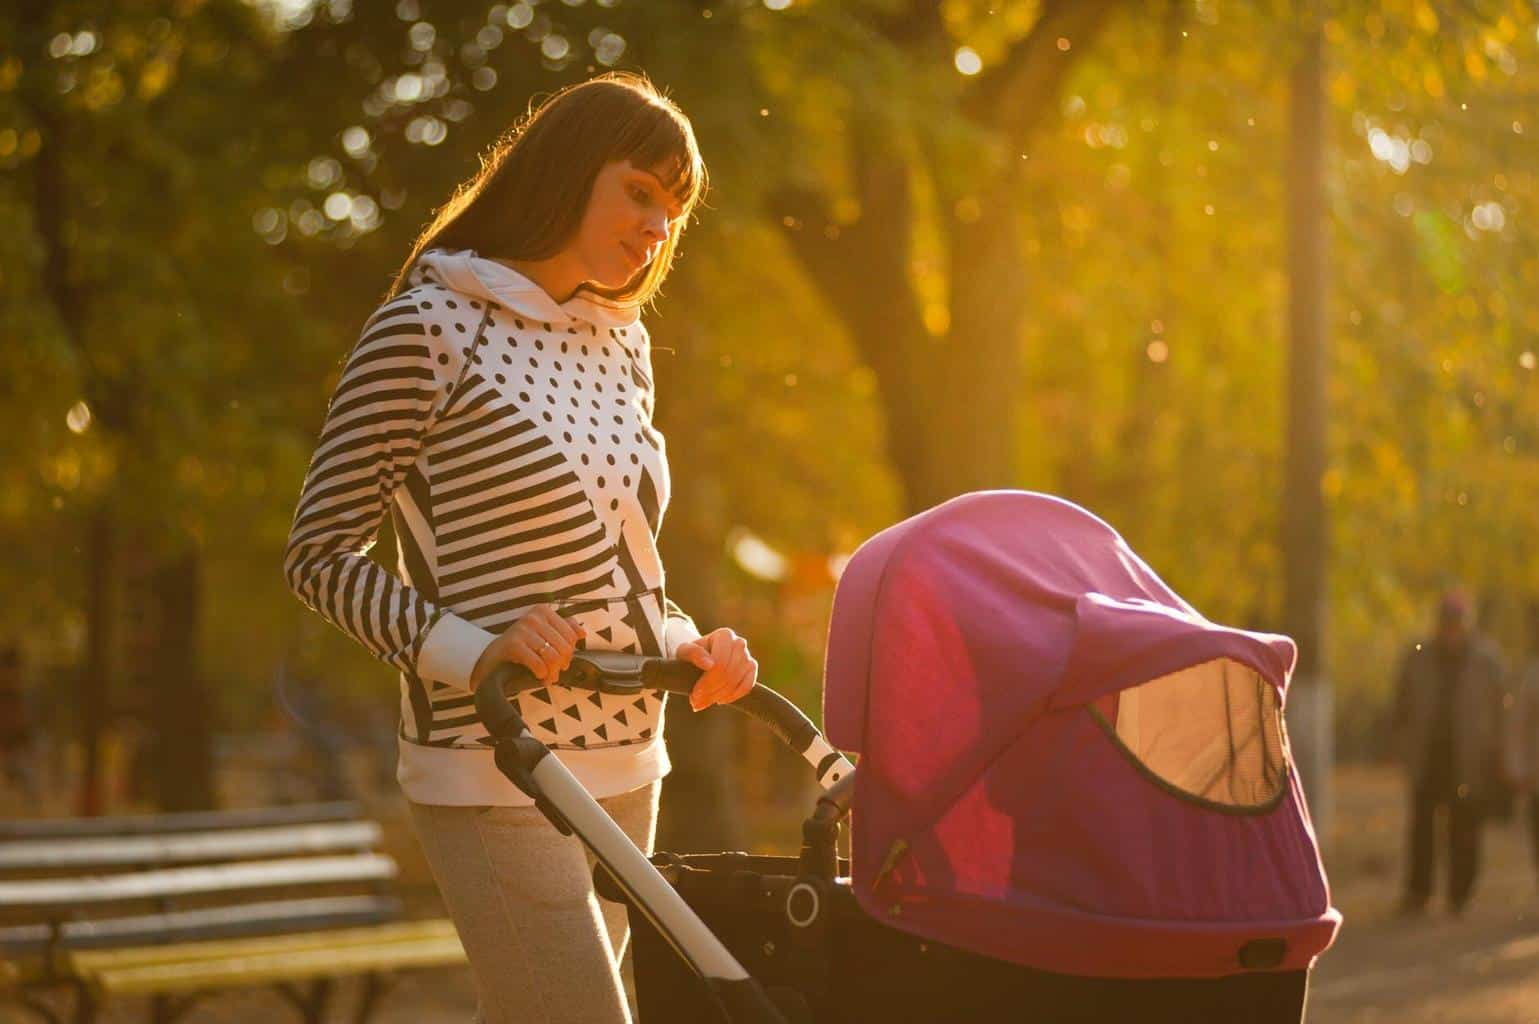 If your baby naps in the stroller, a bug net can ensure comfortable, uninterrupted sleep. - Top 13 Parent-approved Best Stroller Accessories Ideas | Baby Journey